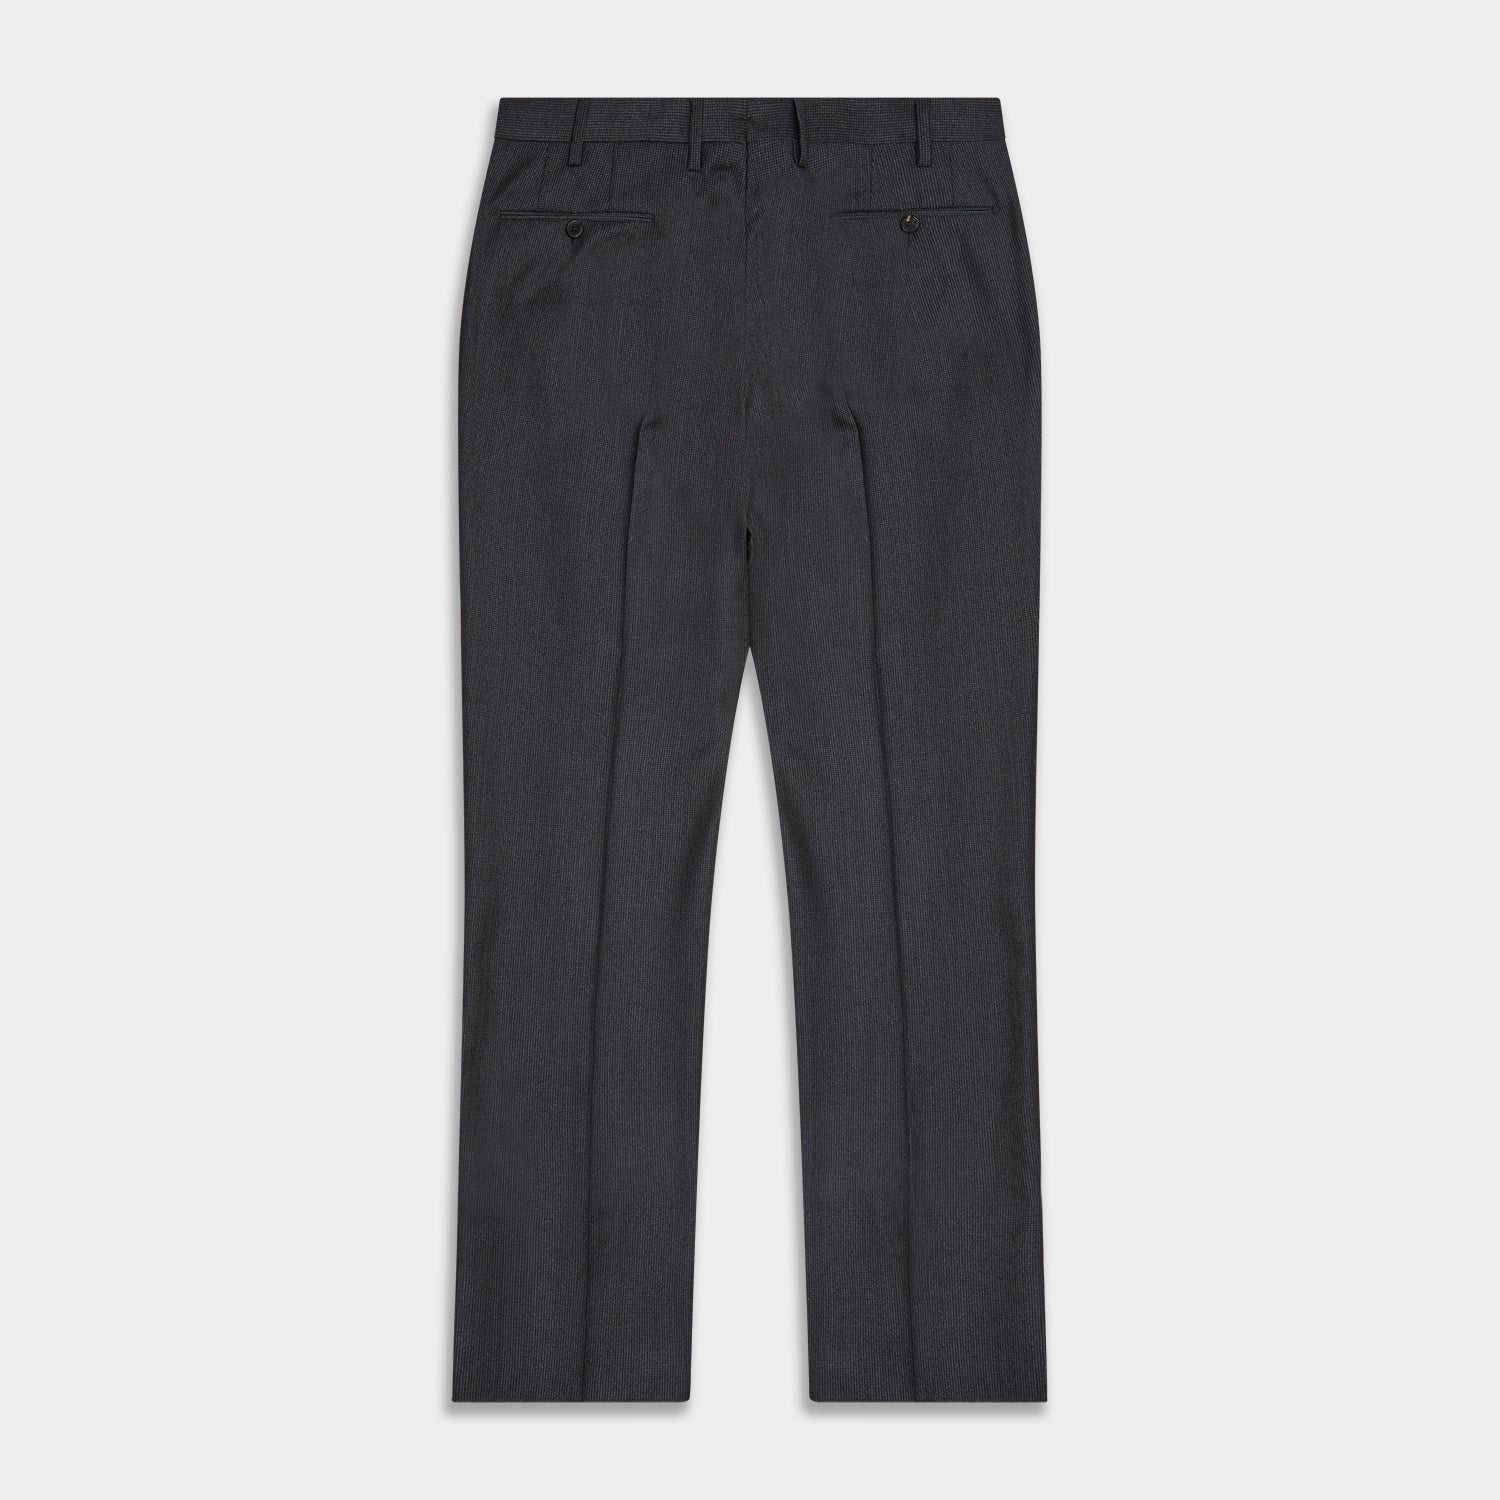 Charcoal Houndstooth Flannel Trousers